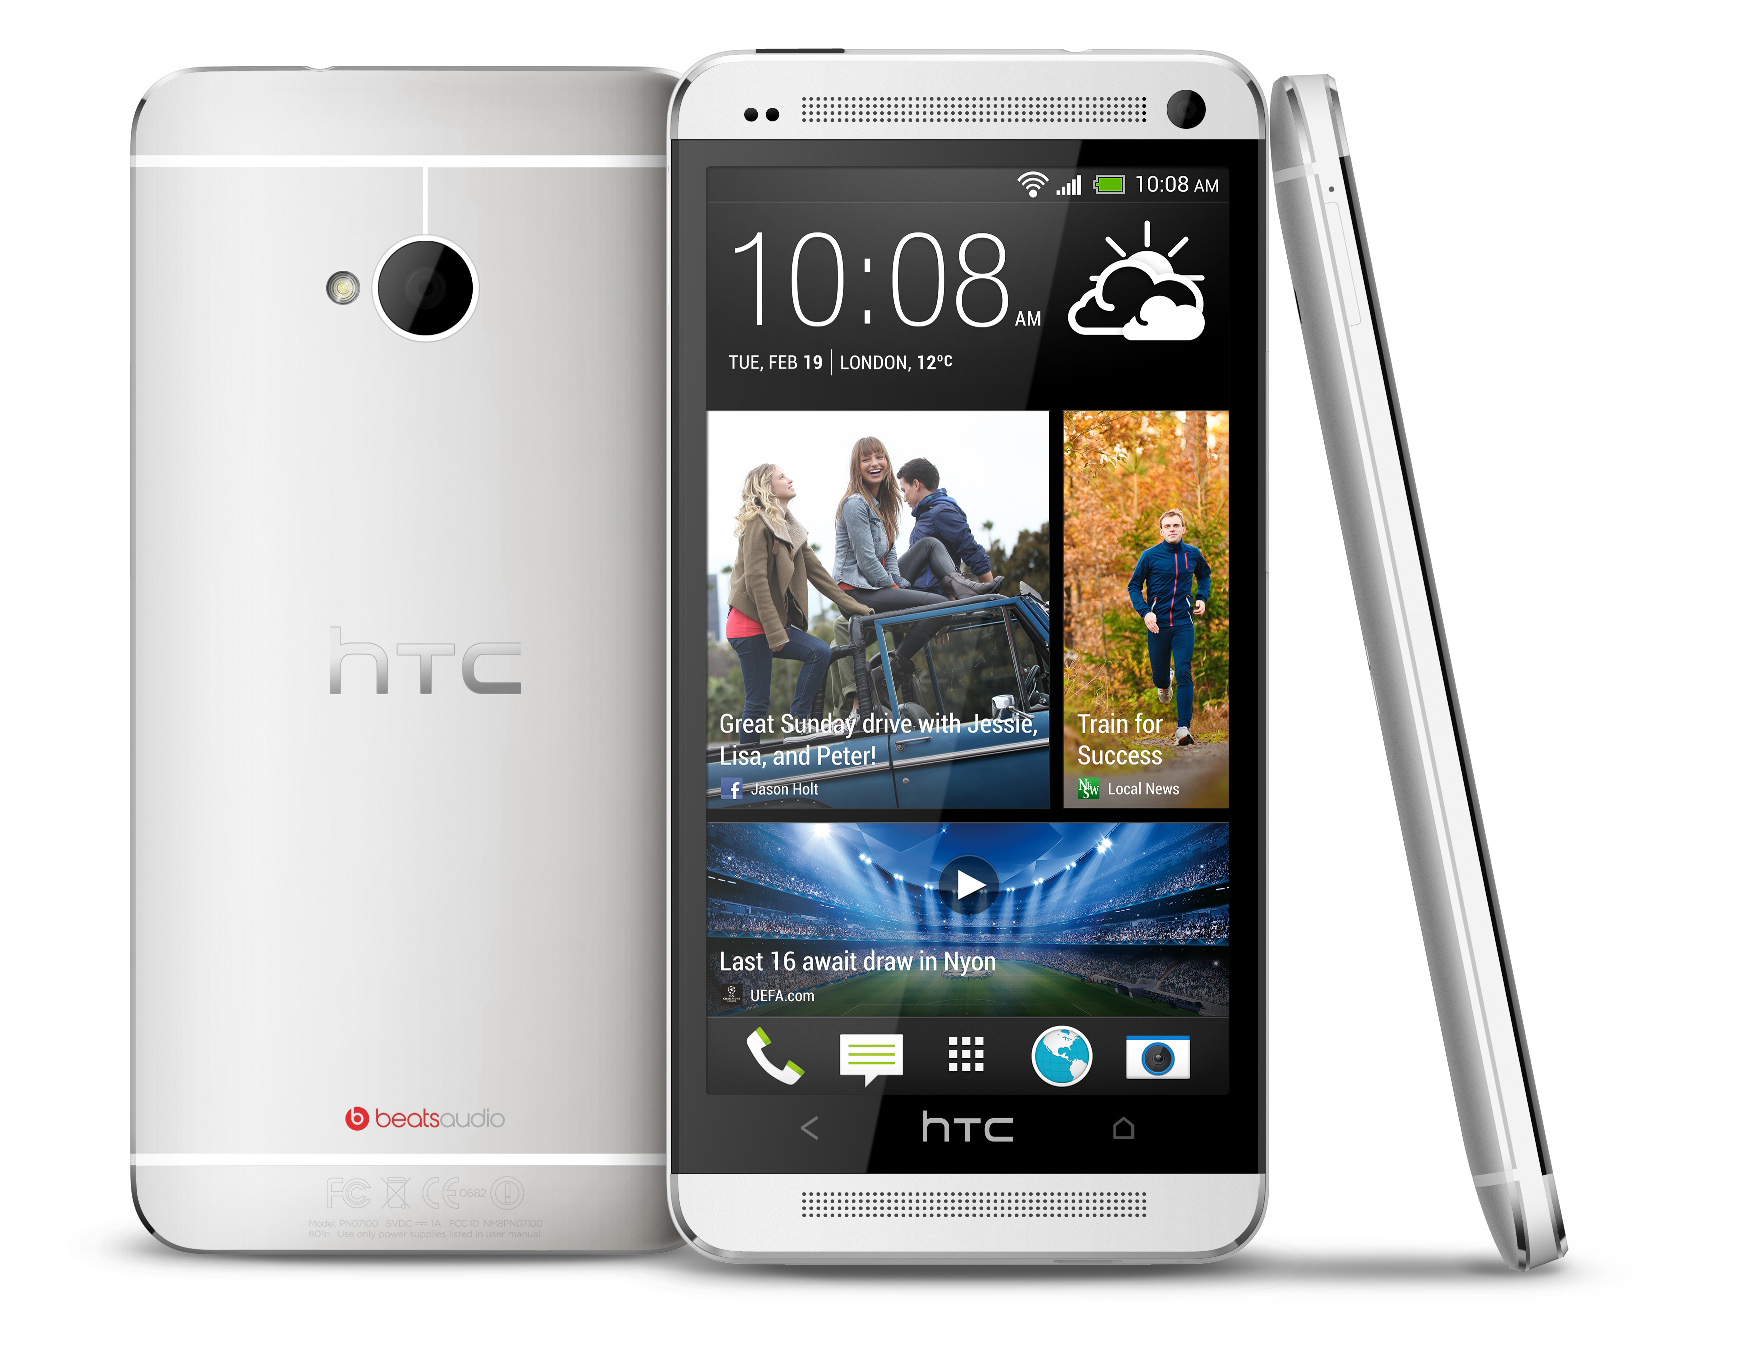 Hands on and Impressions from the HTC One - Formerly M7